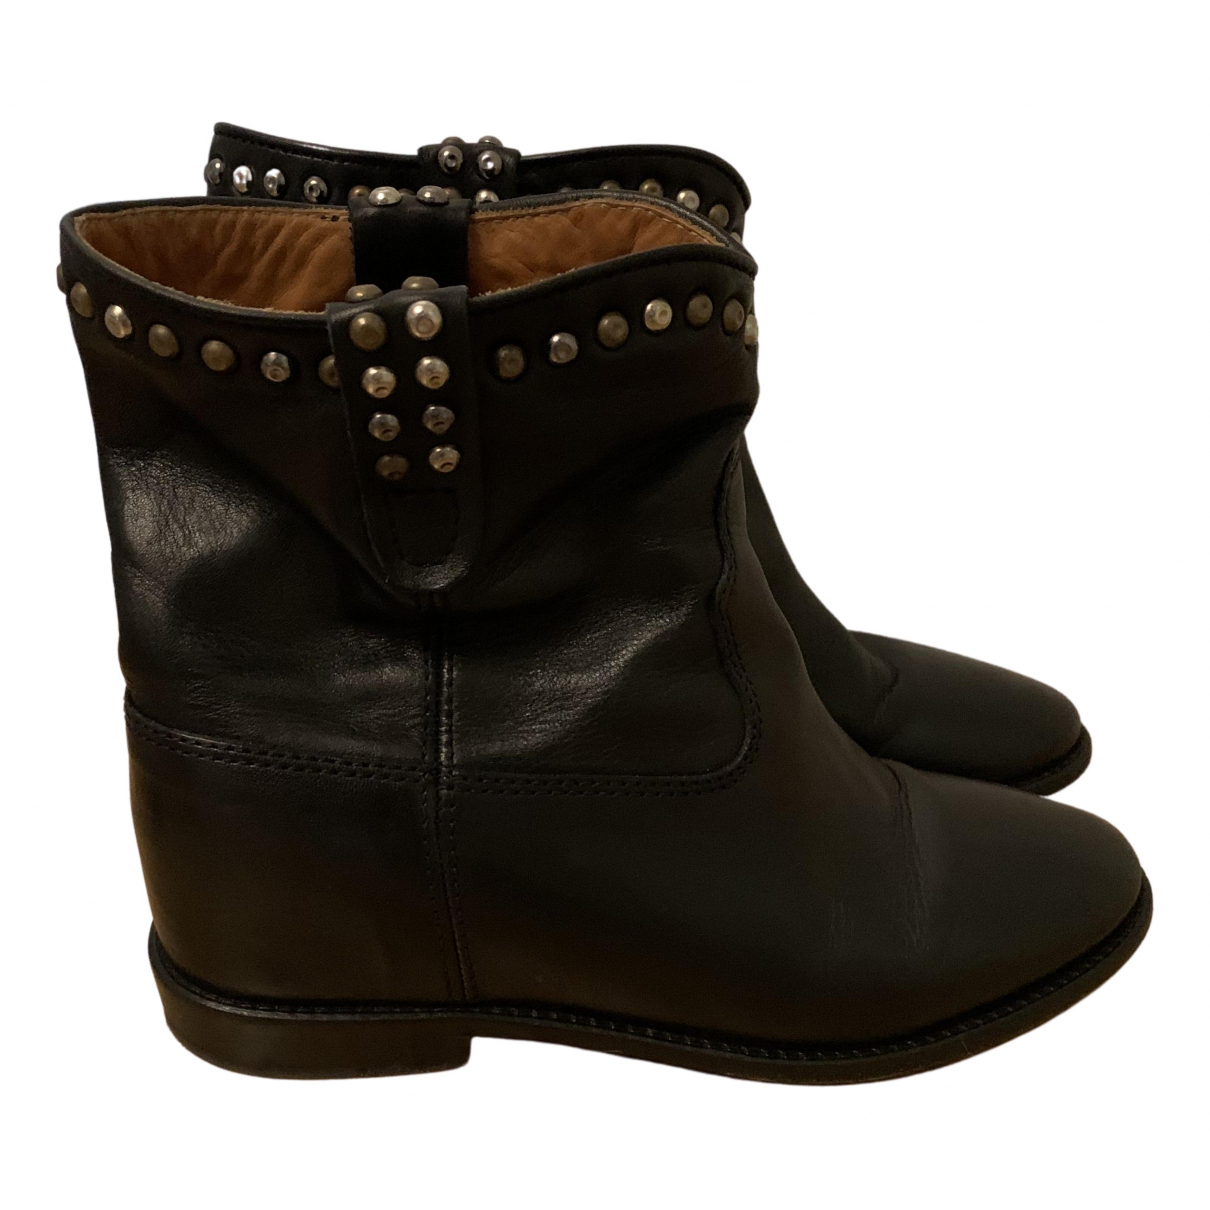 Isabel Marant Crisi  Black Leather Ankle boots for Women 37 EU